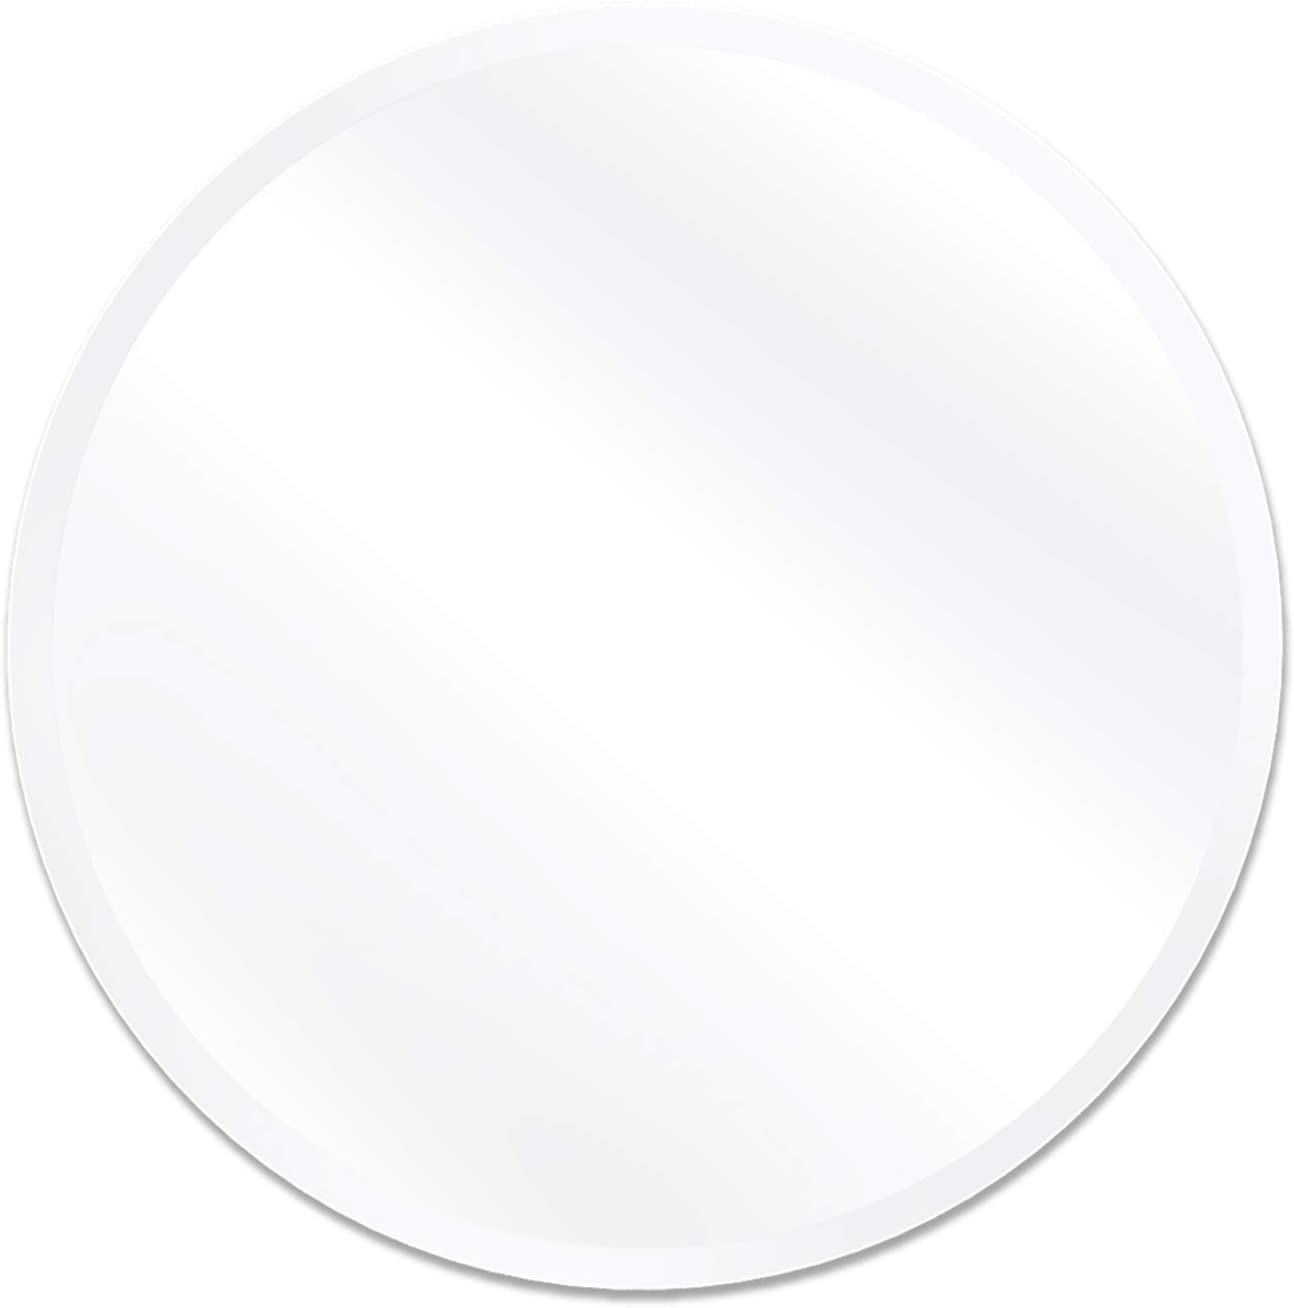 USHOWER 30-Inch Frameless Round Wall Mirror, Large Decor Circle Mirror for Bathroom, Vanity, Bedroom, 1